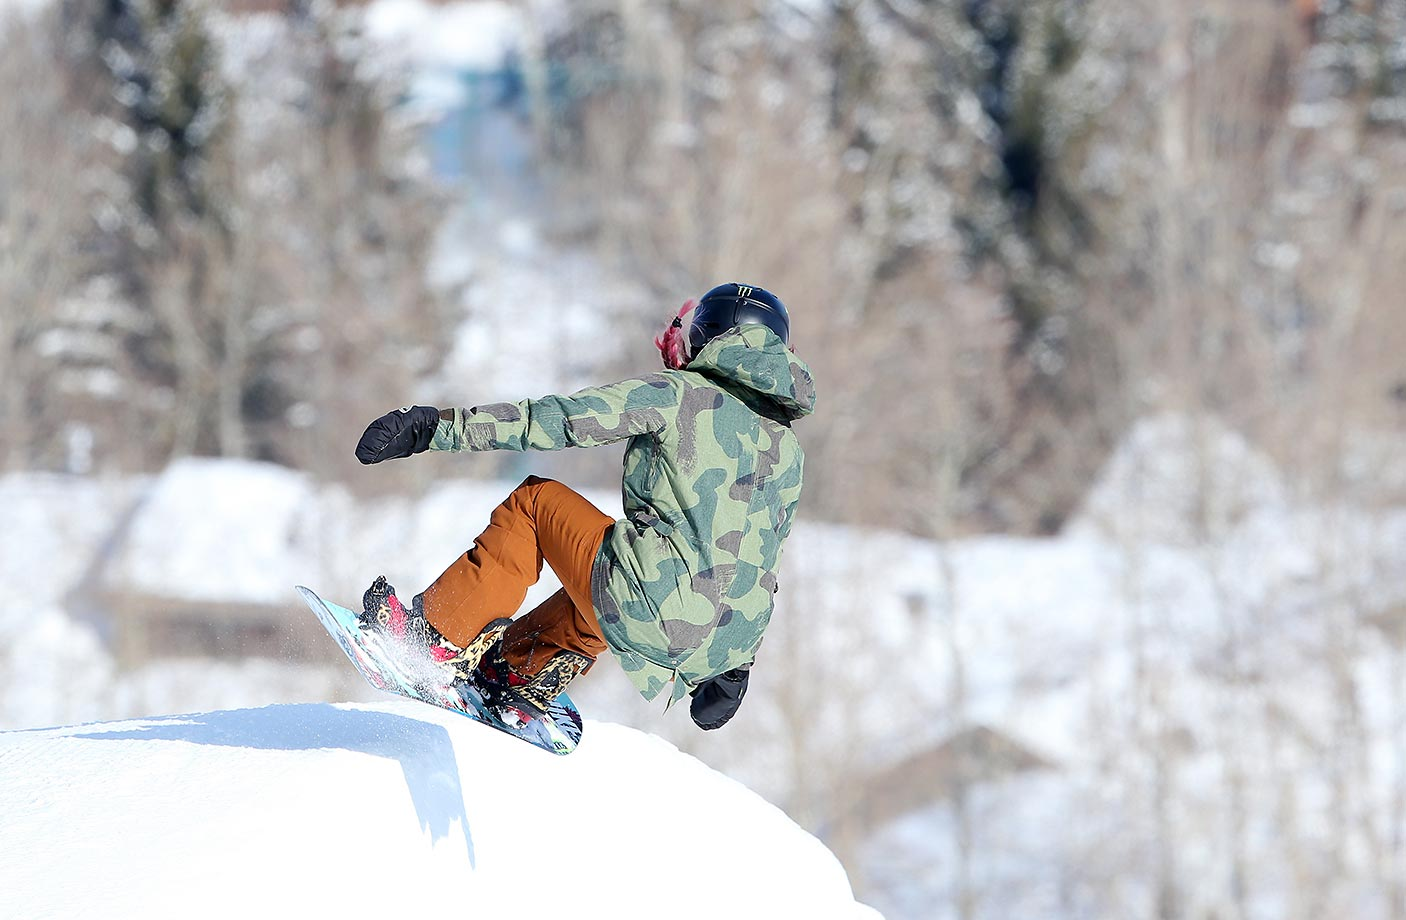 Snowboarder Chloe Kim will be a fan favorite at the upcoming 2016 Winter X Games in Aspen.